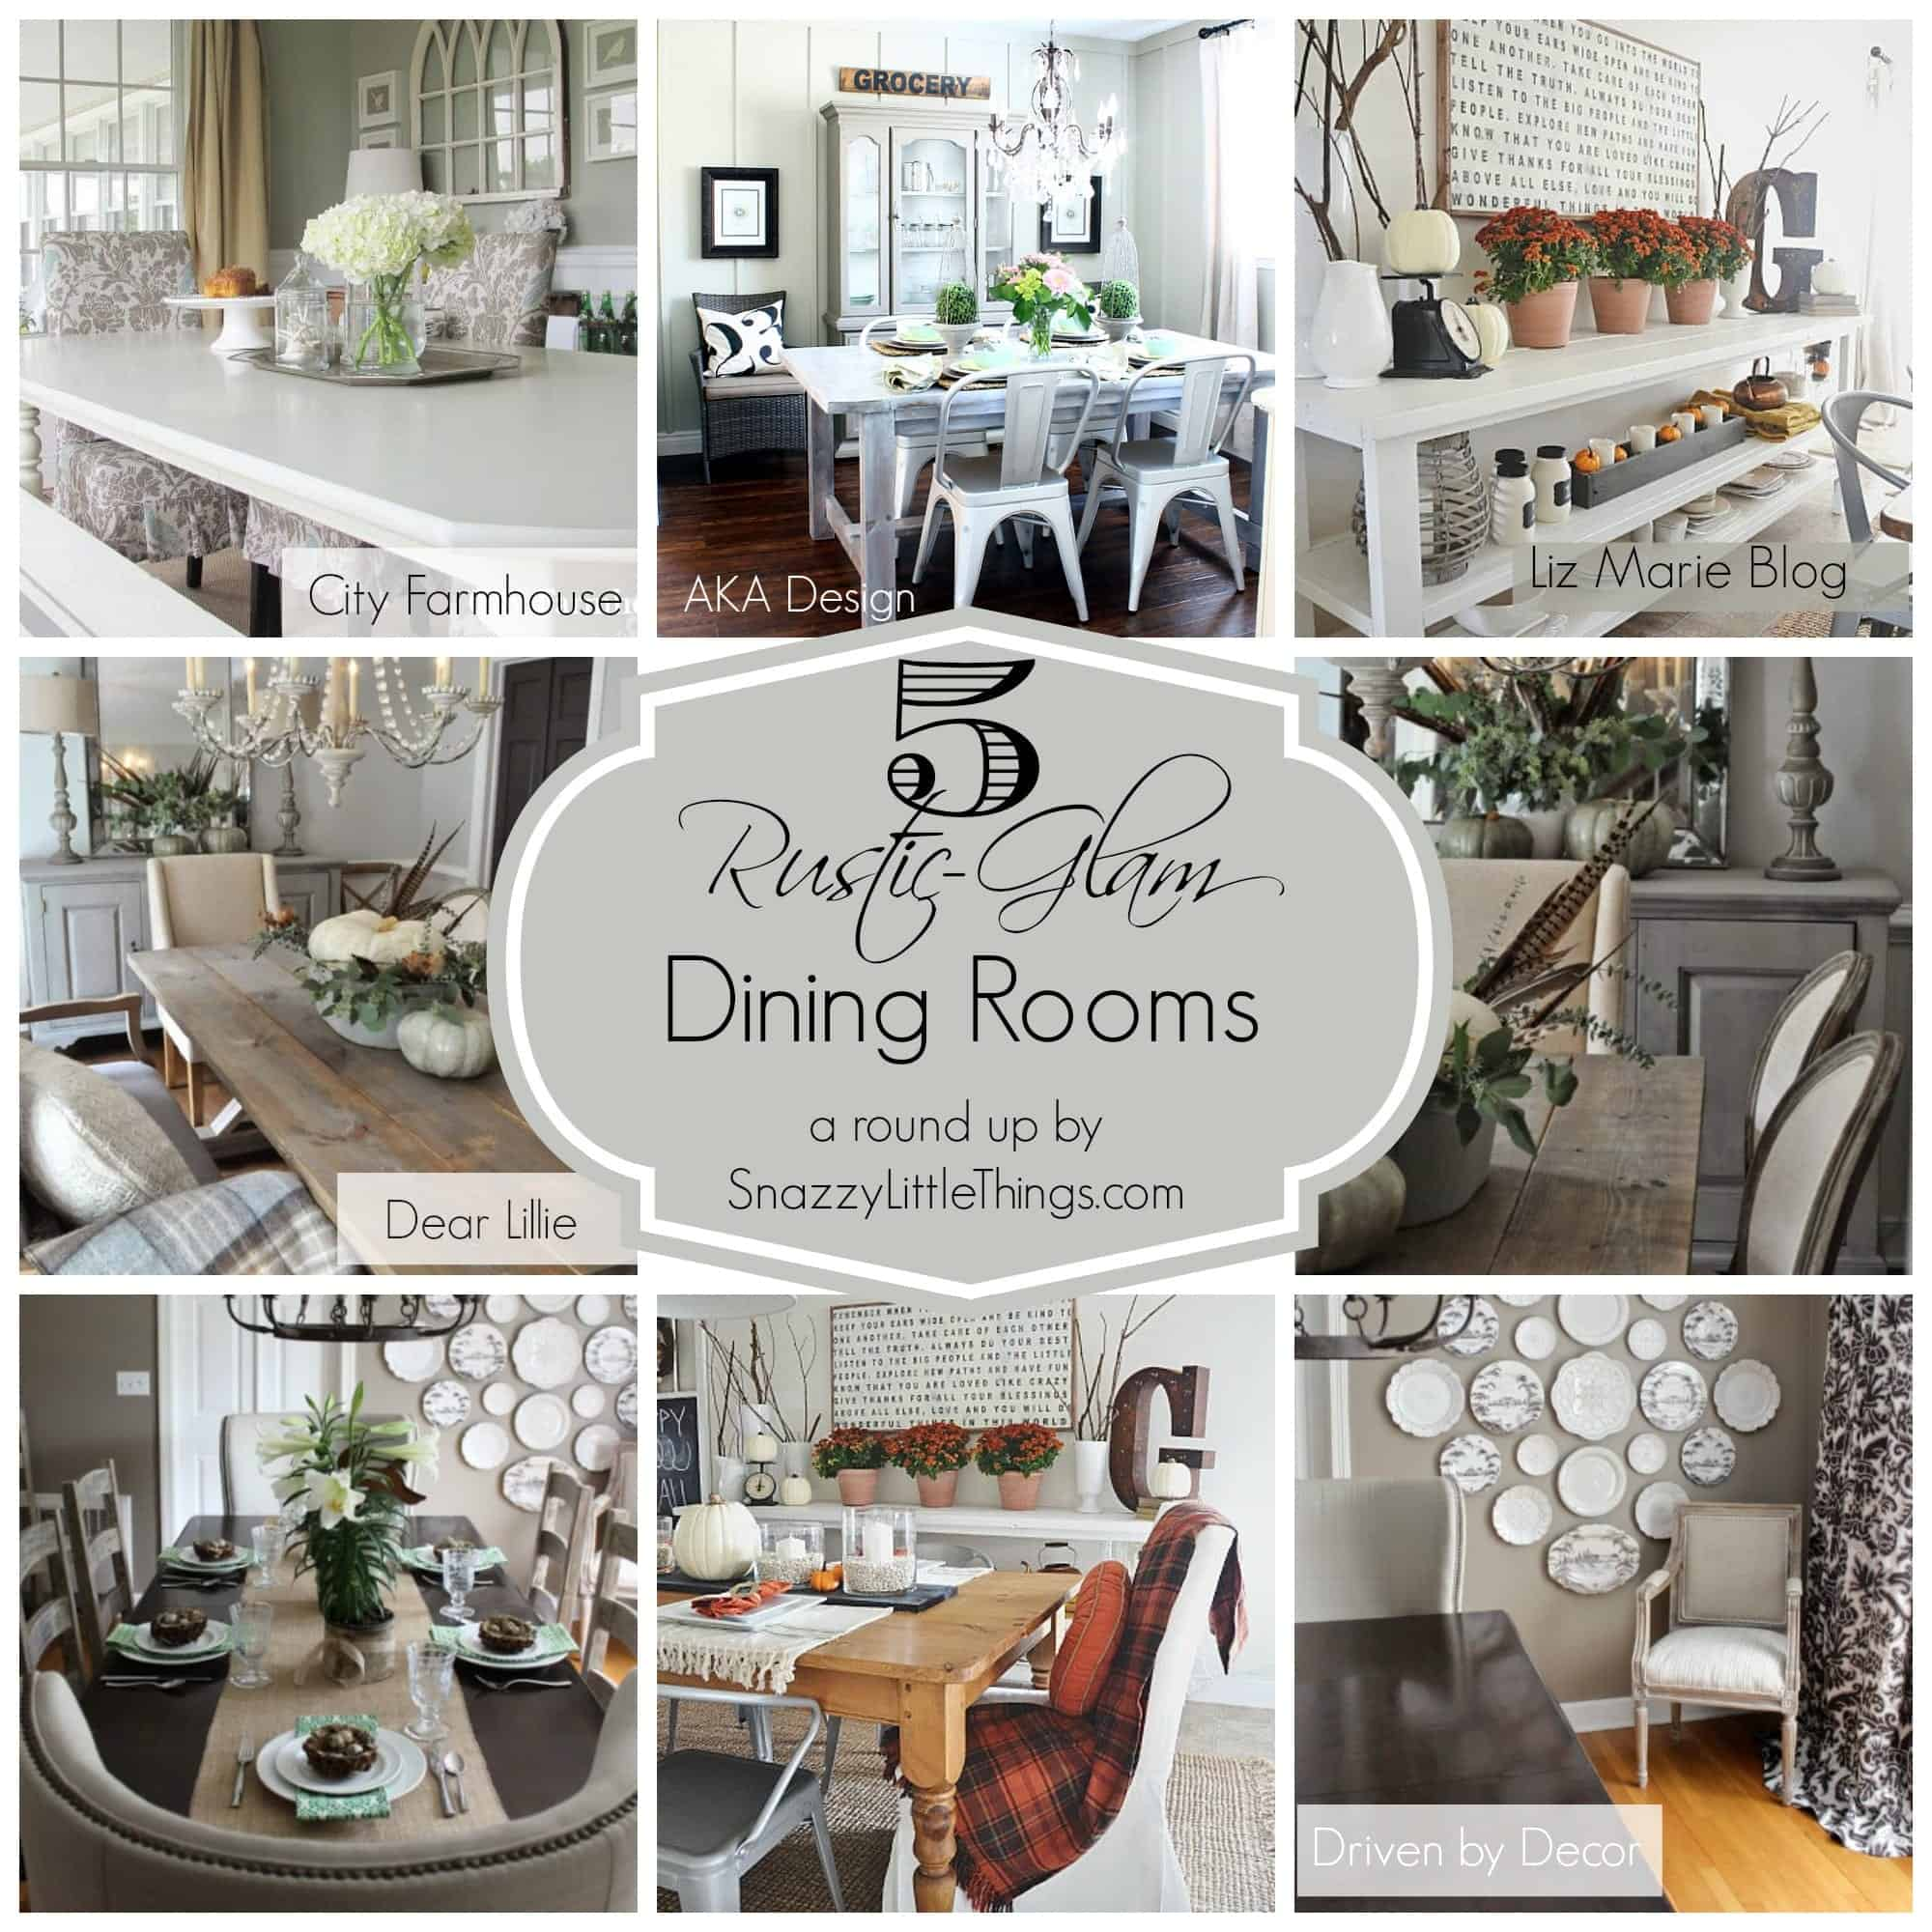 Five Rustic Glam Dining Rooms snazzy little things : 5 rustic glam dining rooms1 from www.snazzylittlethings.com size 2000 x 2000 jpeg 869kB